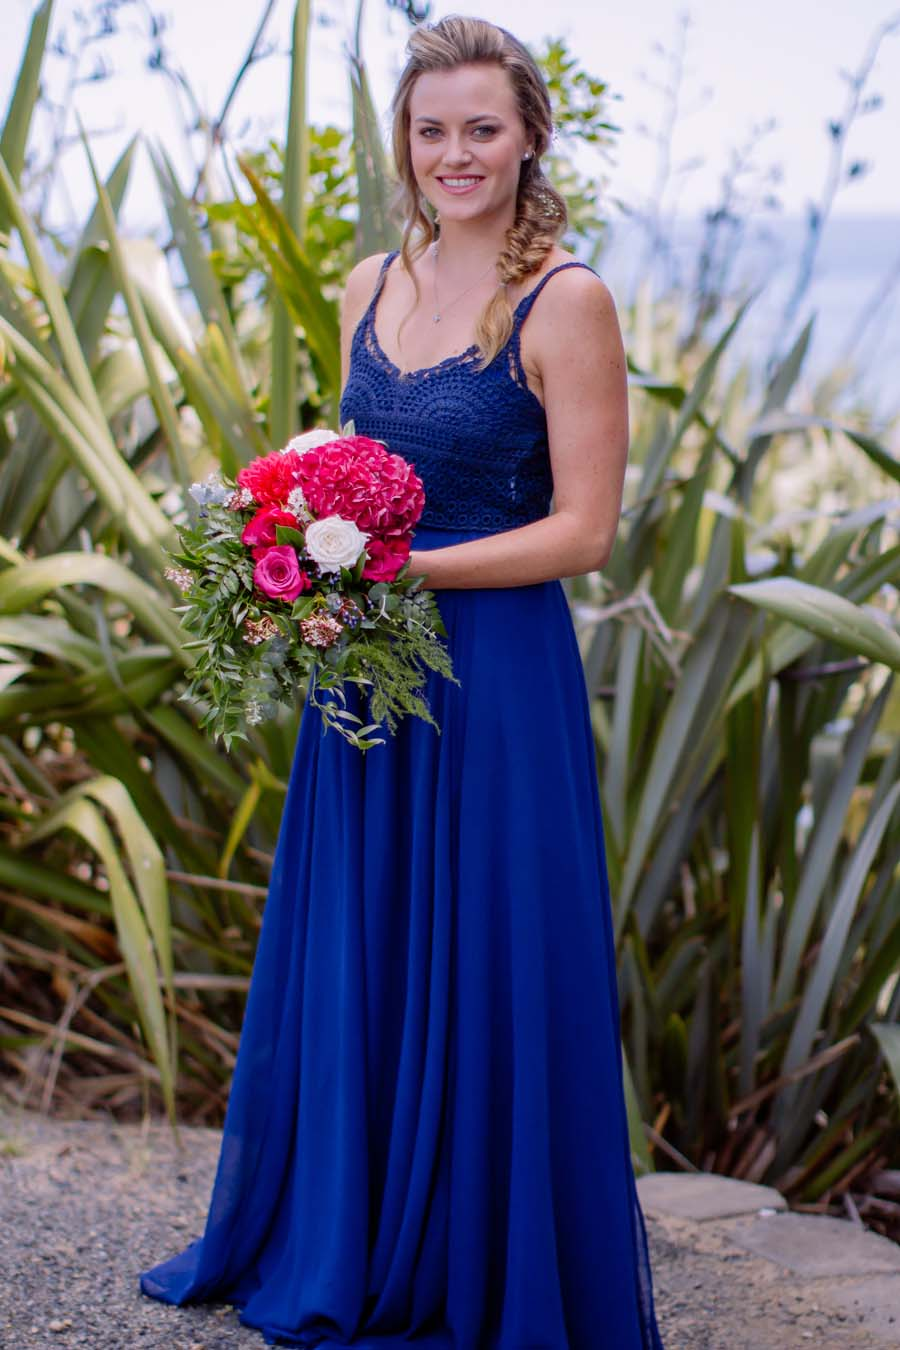 nz_wedding_photographer_castaways_waiuku-849